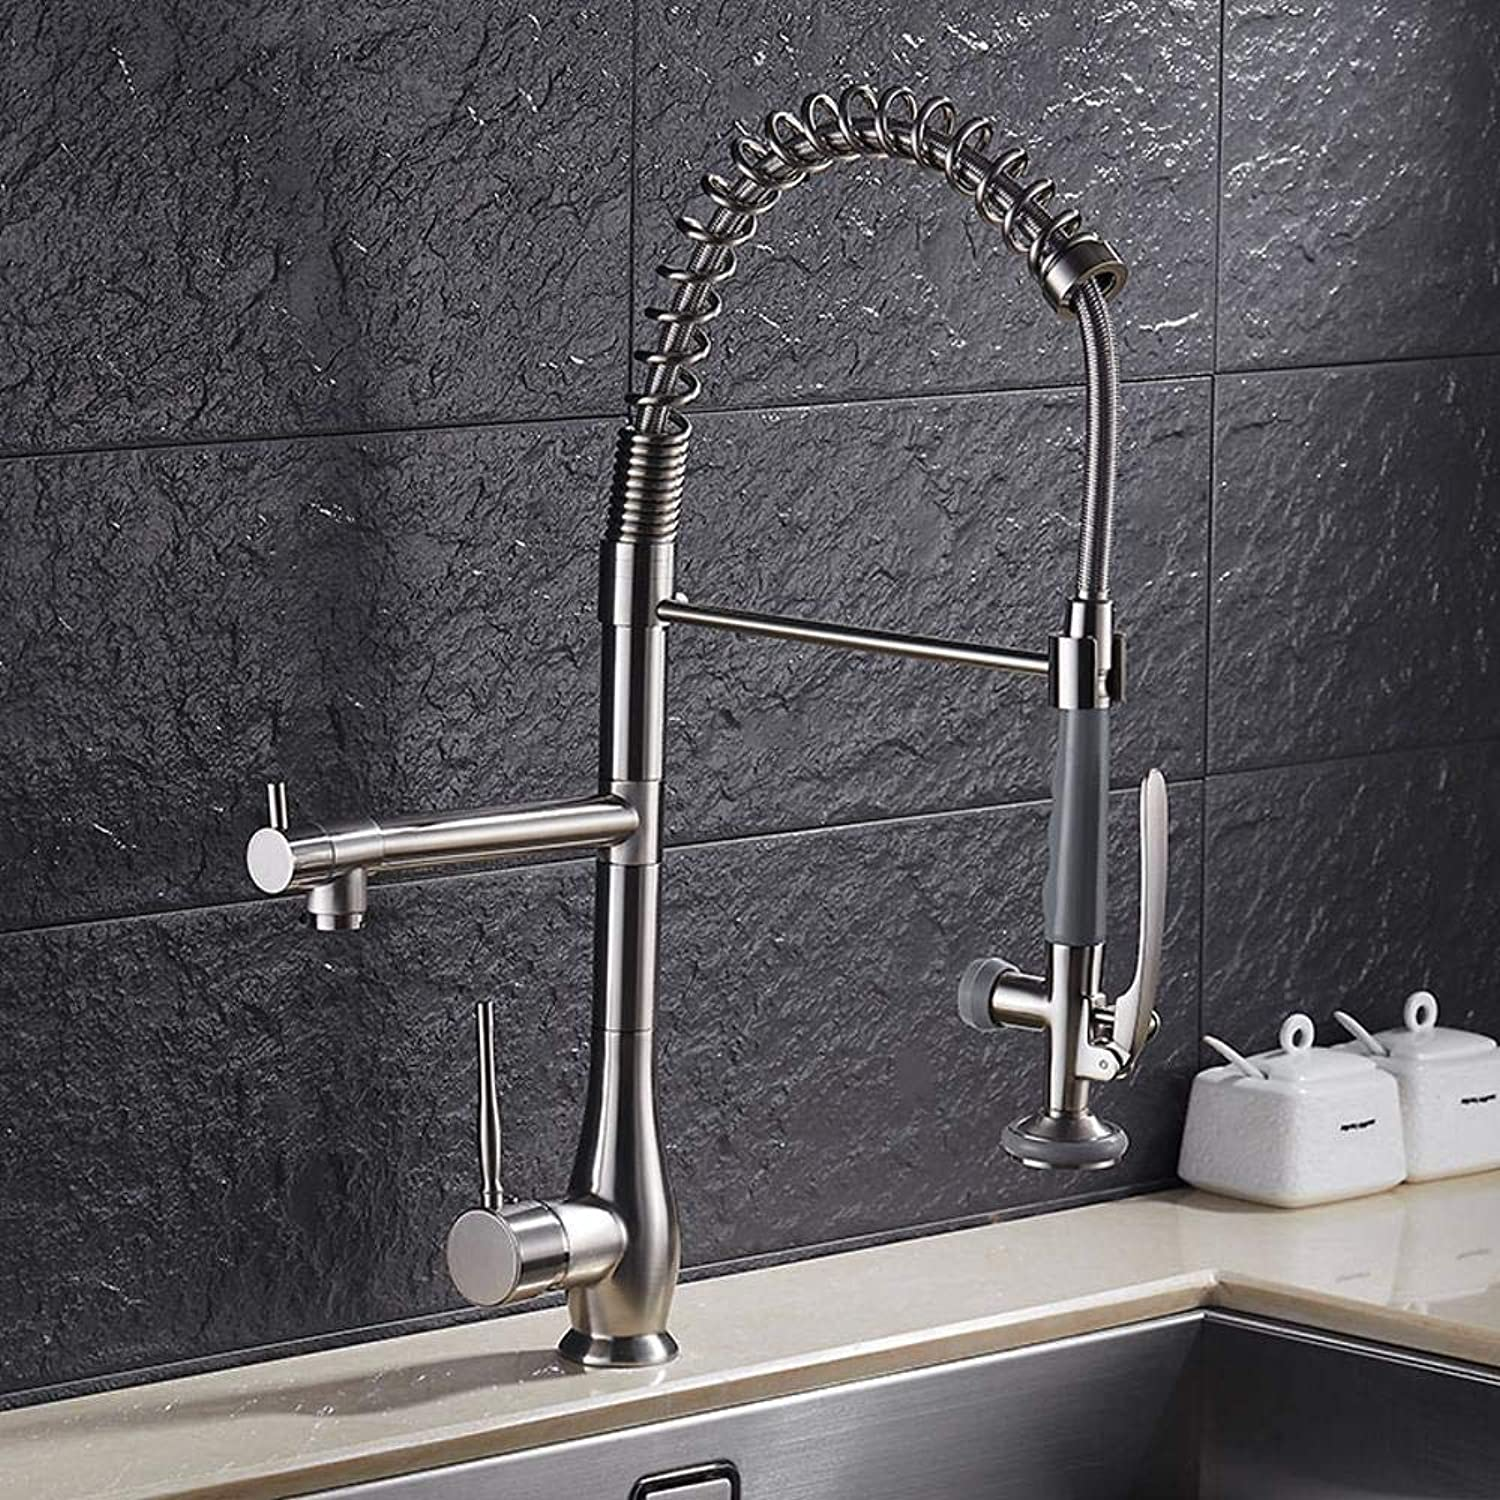 Lxj Faucet nickel Drawing Kitchen pull-out faucet redary dual-purpose dish basin sink hot and cold faucet